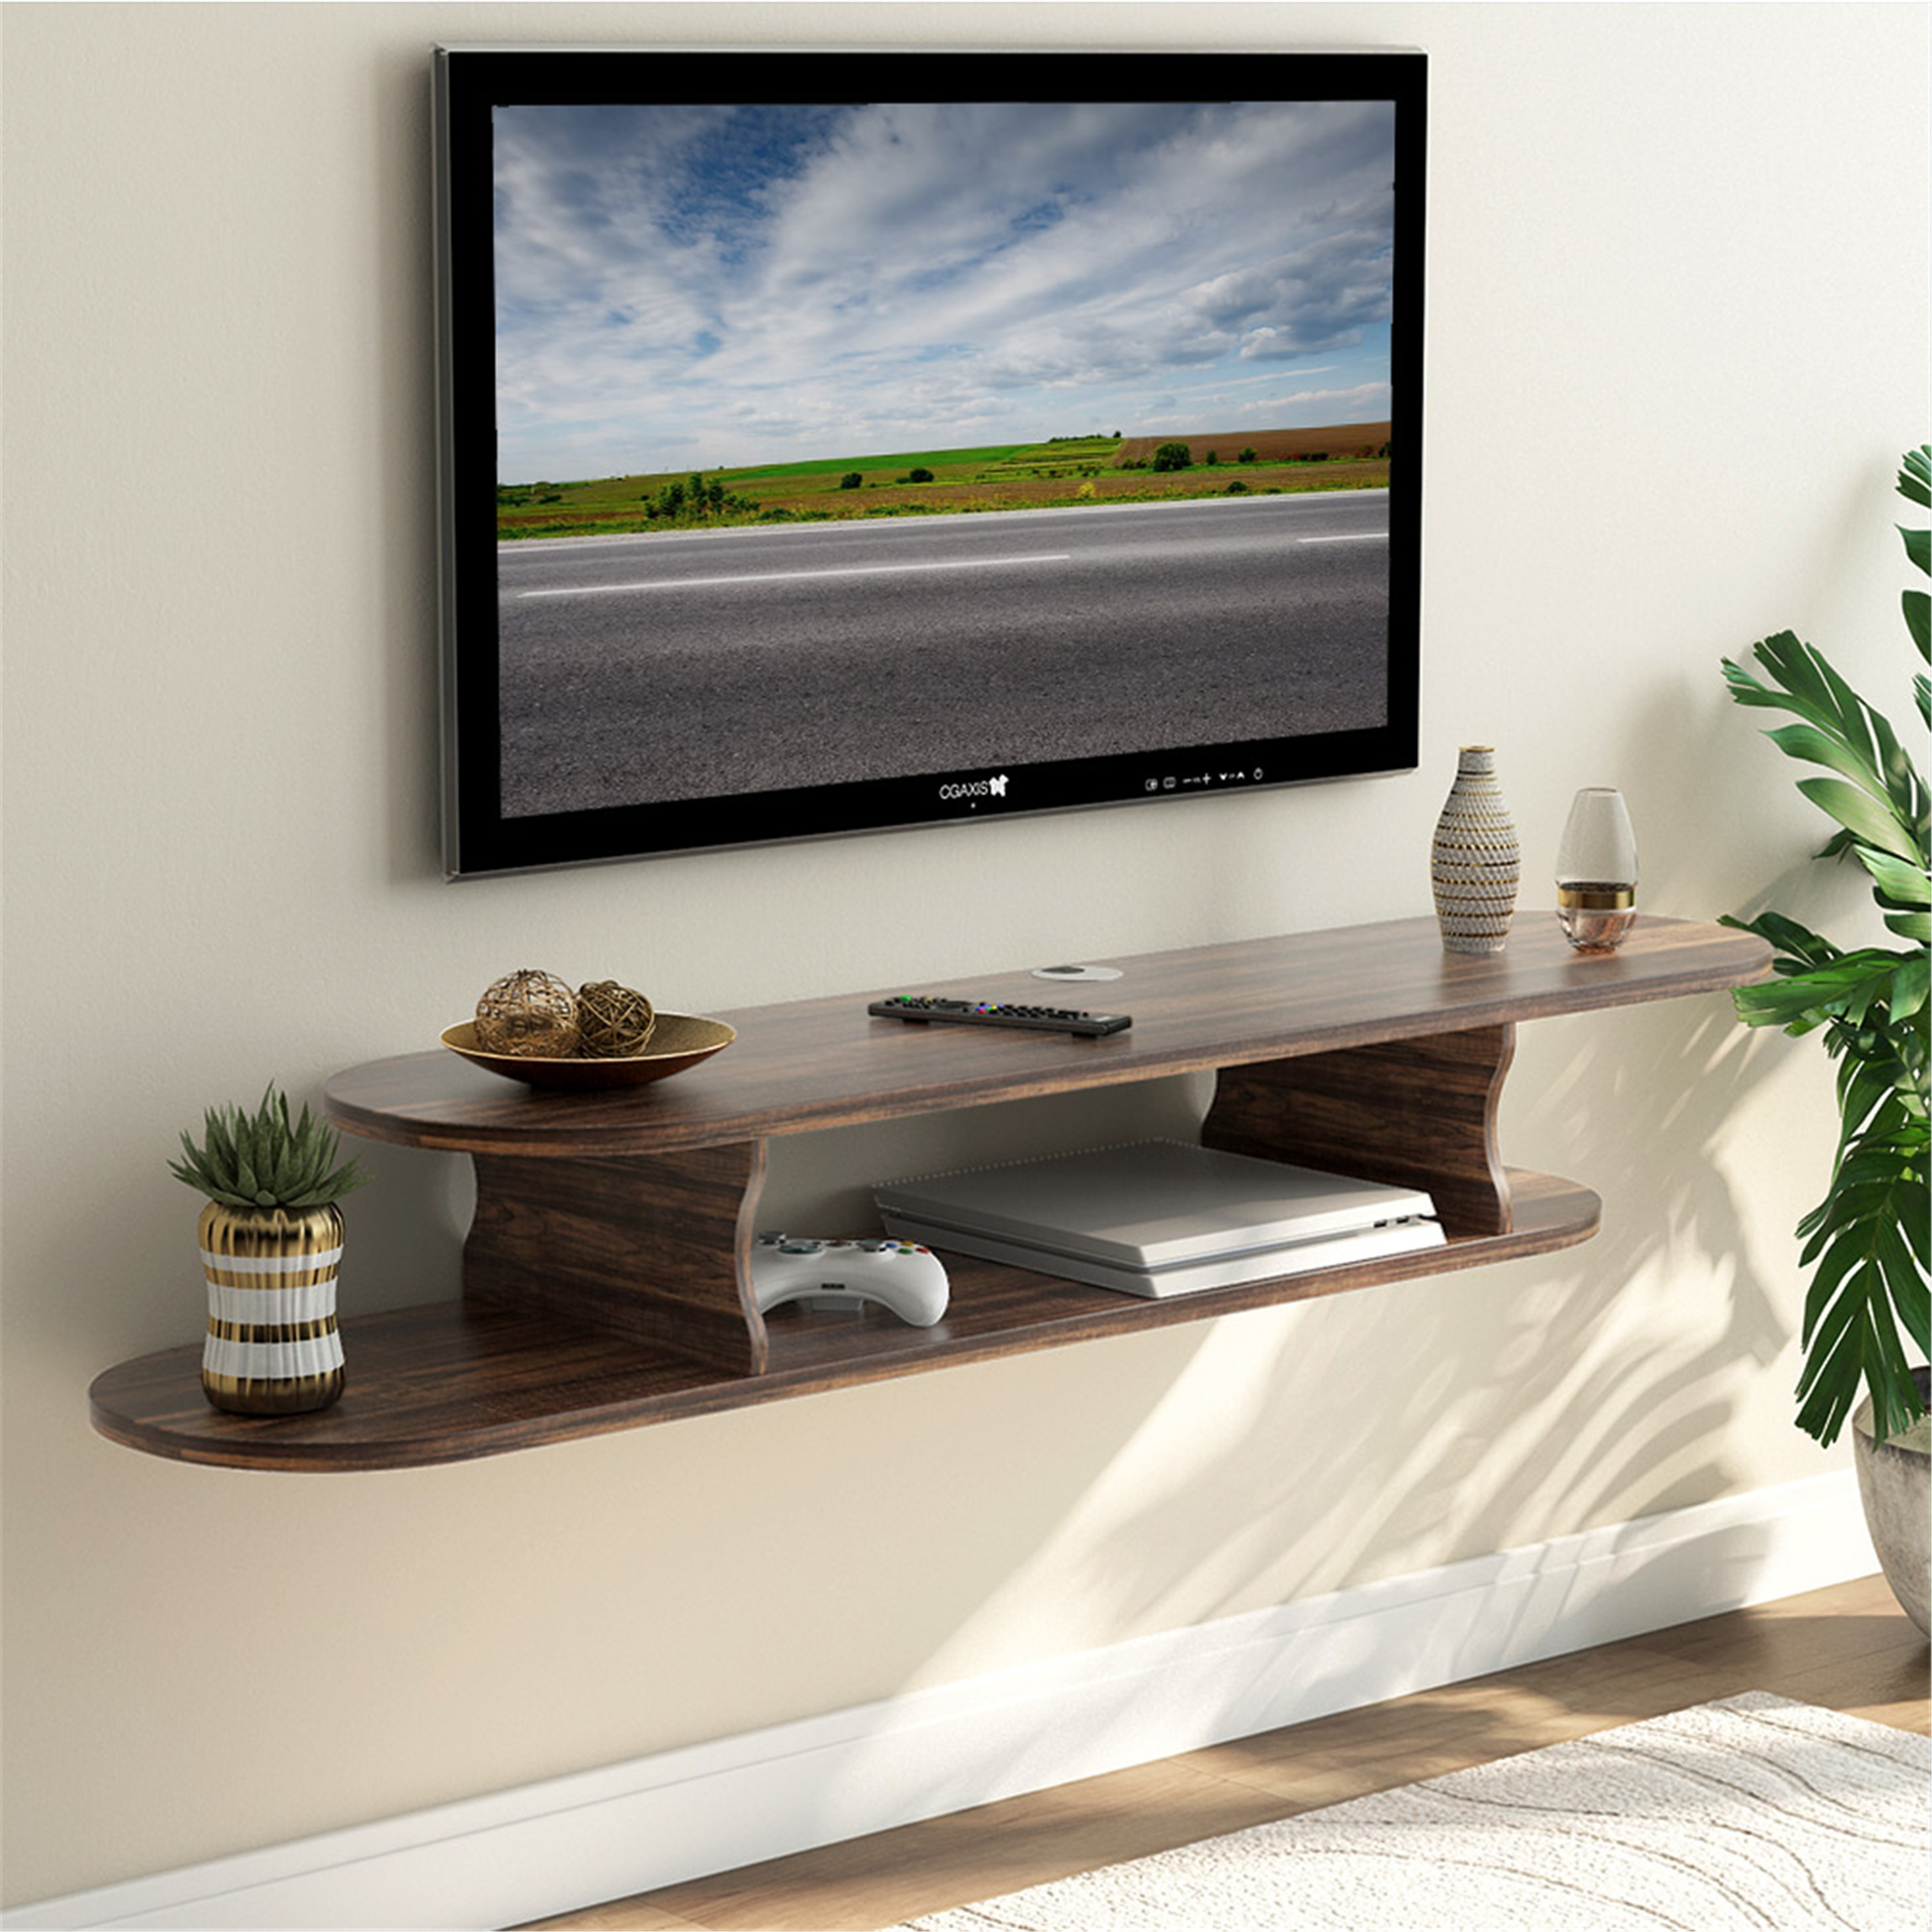 39.4x11.8x7.2inch 2 Tier Wall Mounted TV Stand with 3 Spacious Storage,Wooden Floating Tv Shelf Cabinet Modern Home Decor Hanging Media Console for Cable Box Set-top Box Black 100x30x18.2cm